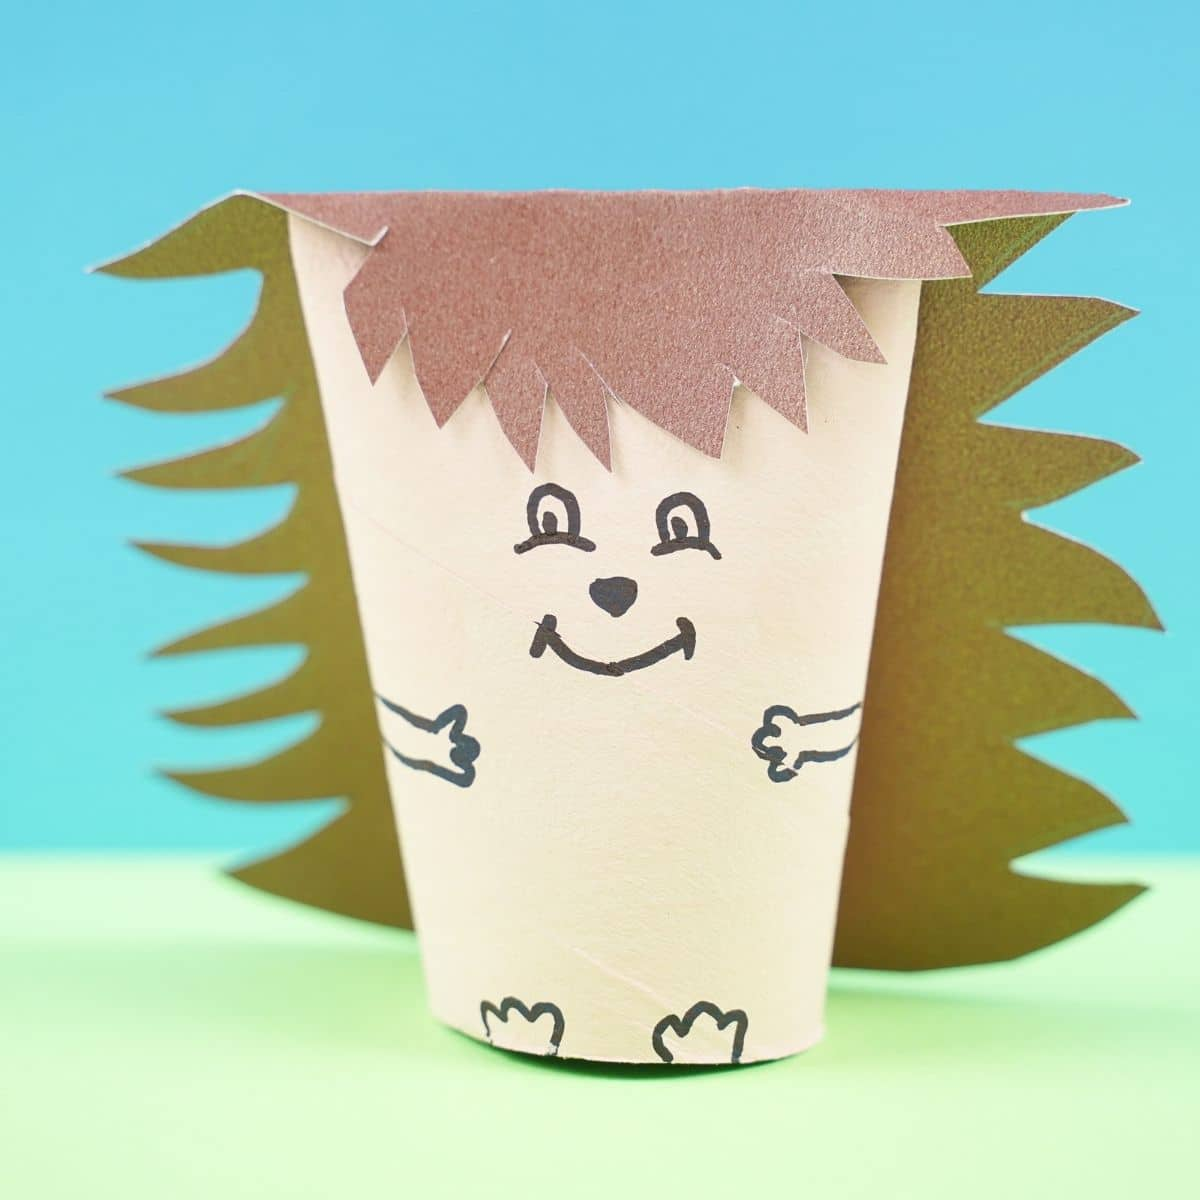 Mini paper hedgehog on green paper with blue background